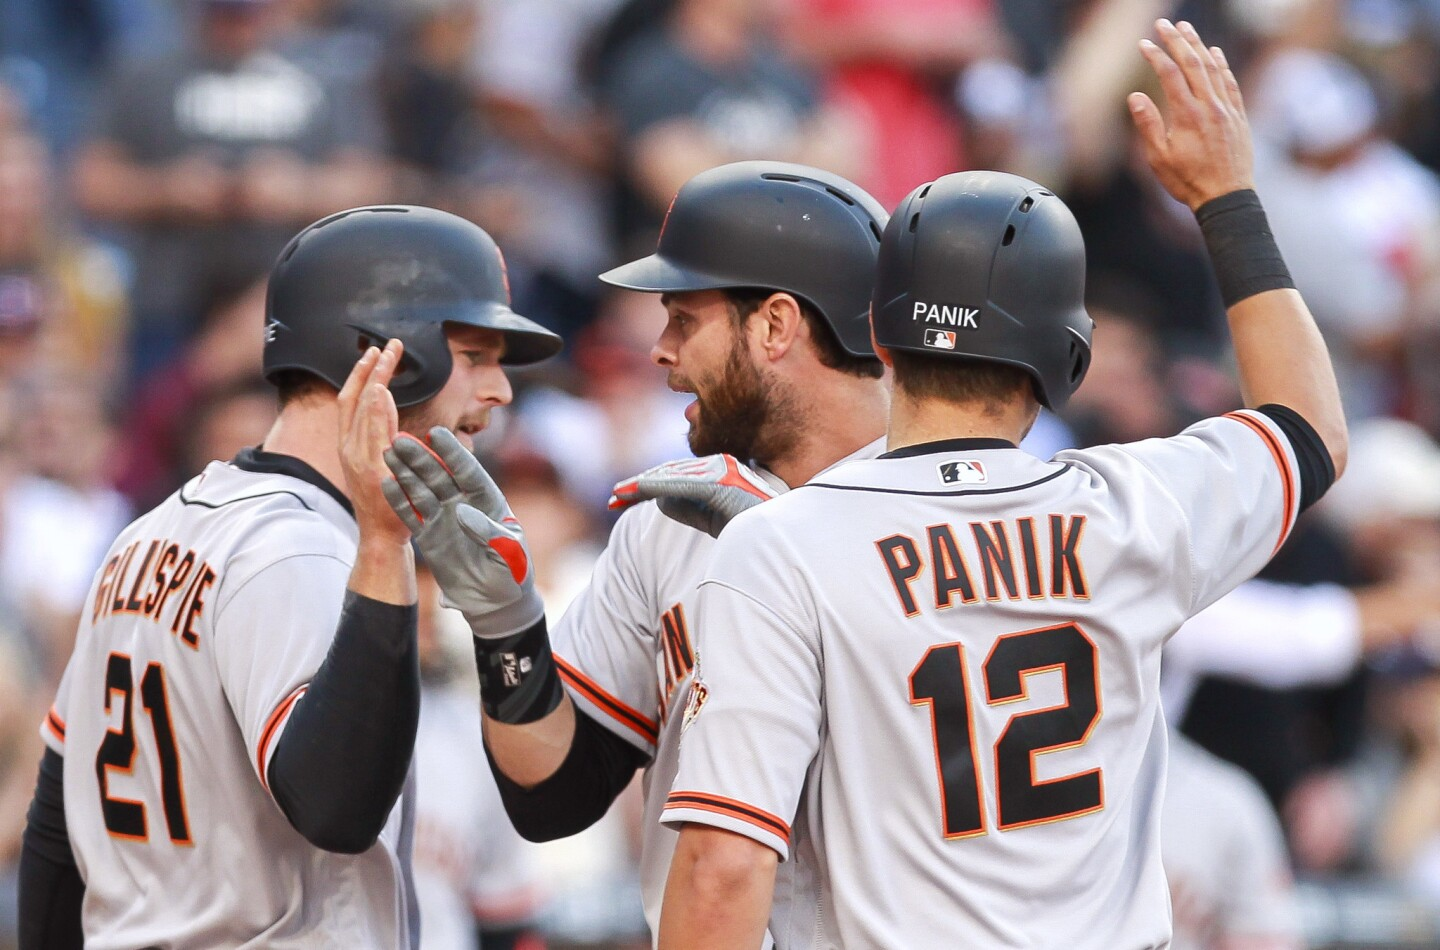 SAN DIEGO, April 7, 2017 | The Giants' Brandon Belt, center, celebrates with Conor Gillaspie, left, and Joe Panik after Belt hit a grand slam in the sixth inning during the Padres home opener at Petco Park in San Diego on Friday. | Photo by Hayne Palmour IV/San Diego Union-Tribune/Mandatory Credit: HAYNE PALMOUR IV/SAN DIEGO UNION-TRIBUNE/ZUMA PRESS San Diego Union-Tribune Photo by Hayne Palmour IV copyright 2016